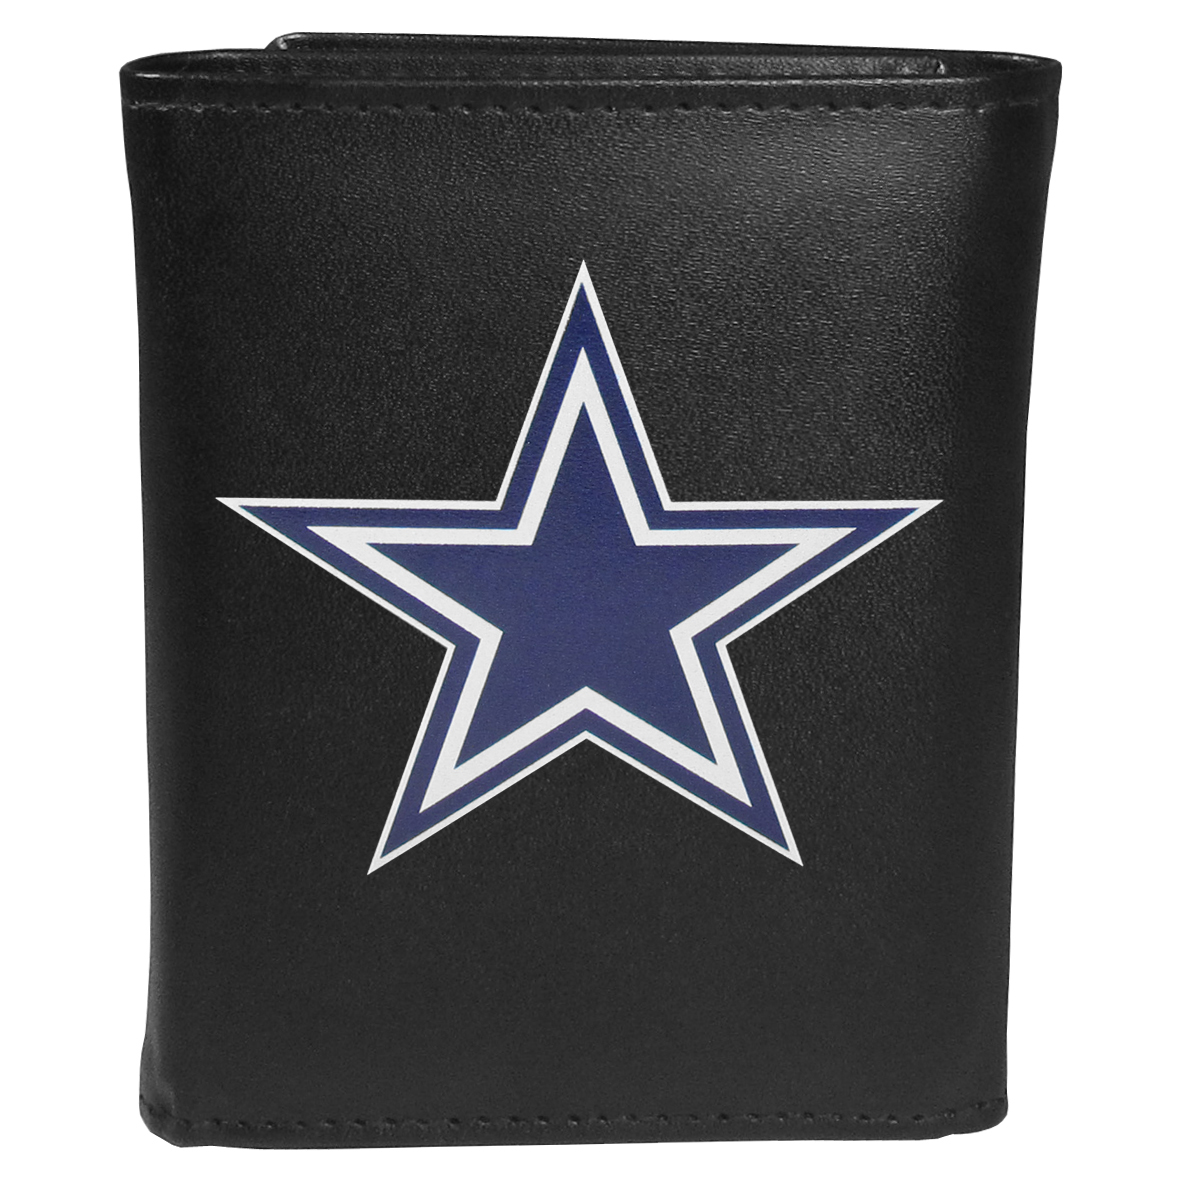 Dallas Cowboys Tri-fold Wallet Large Logo - Sports fans do not have to sacrifice style with this classic tri-fold wallet that sports theDallas Cowboys?extra large logo. This men's fashion accessory has a leather grain look and expert craftmanship for a quality wallet at a great price. The wallet features inner credit card slots, windowed ID slot and a large billfold pocket. The front of the wallet features an extra large printed team logo.